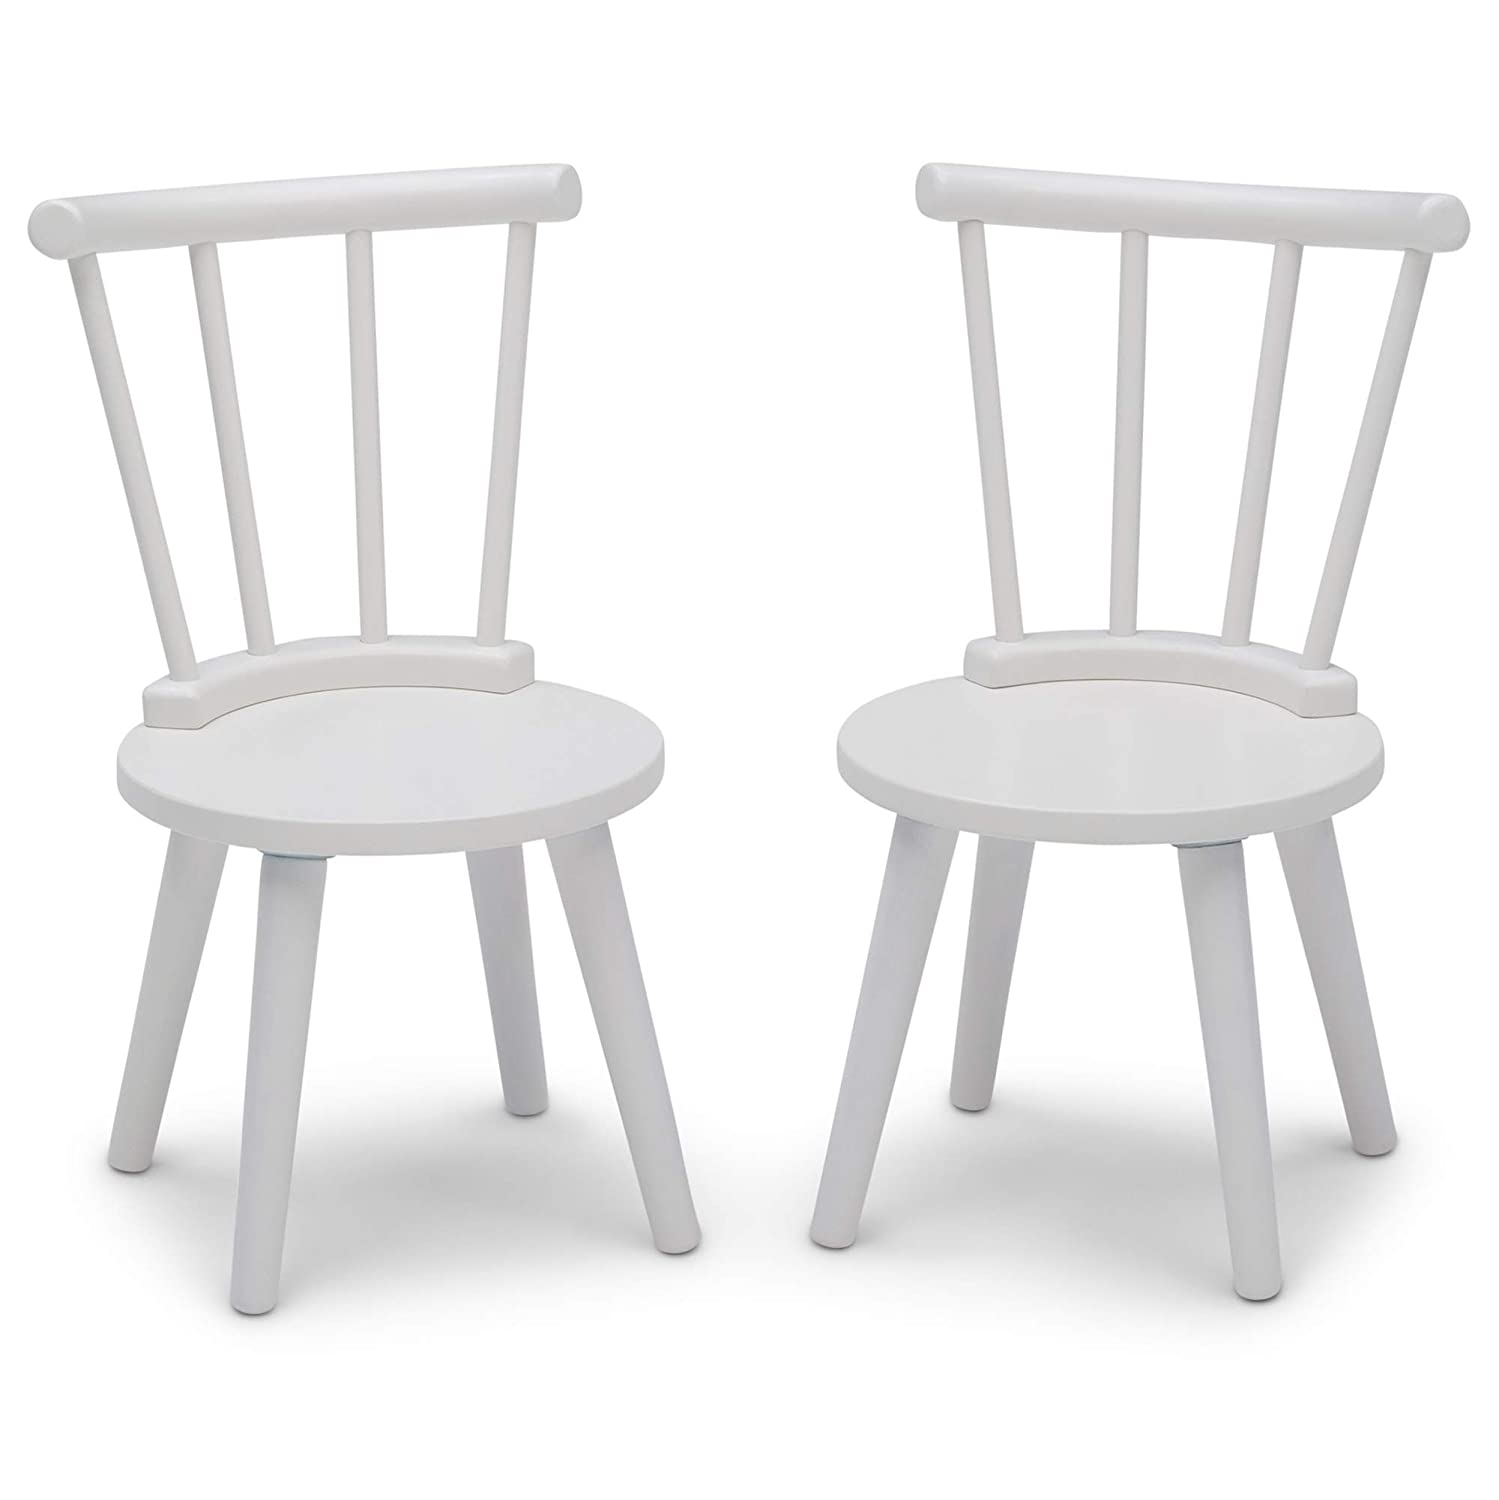 Delta Children Homestead 2-Piece Chair Set- Ideal for Arts & Crafts, Snack Time, Homeschooling, Homework & More, Bianca White